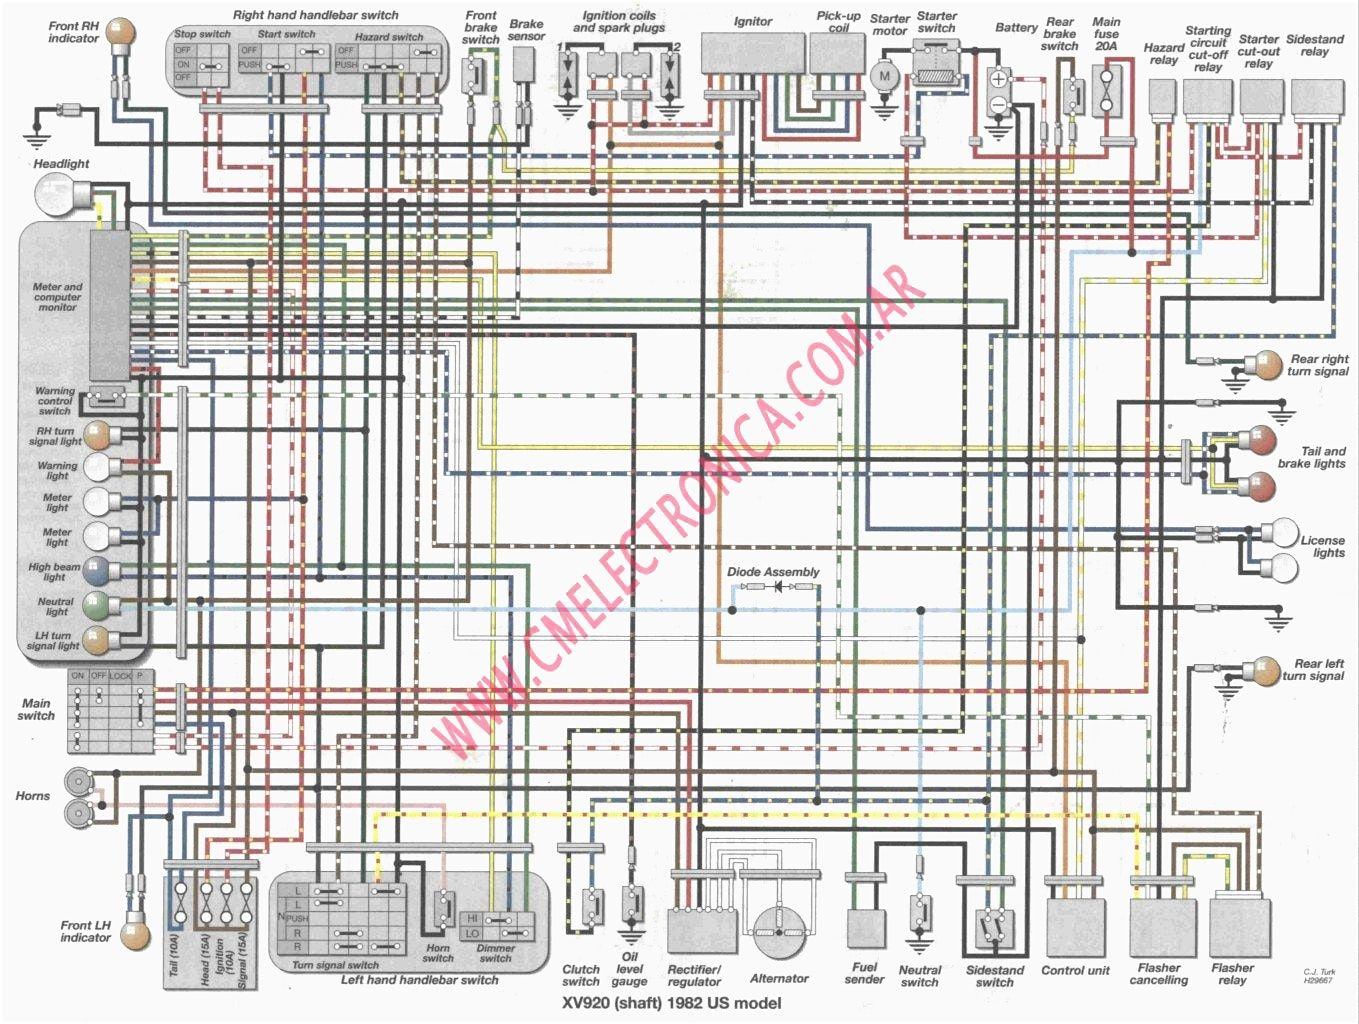 diagrams 15341278 xv250 wiring diagram yamaha virago 250 inside new rh  pinterest com yamaha v star